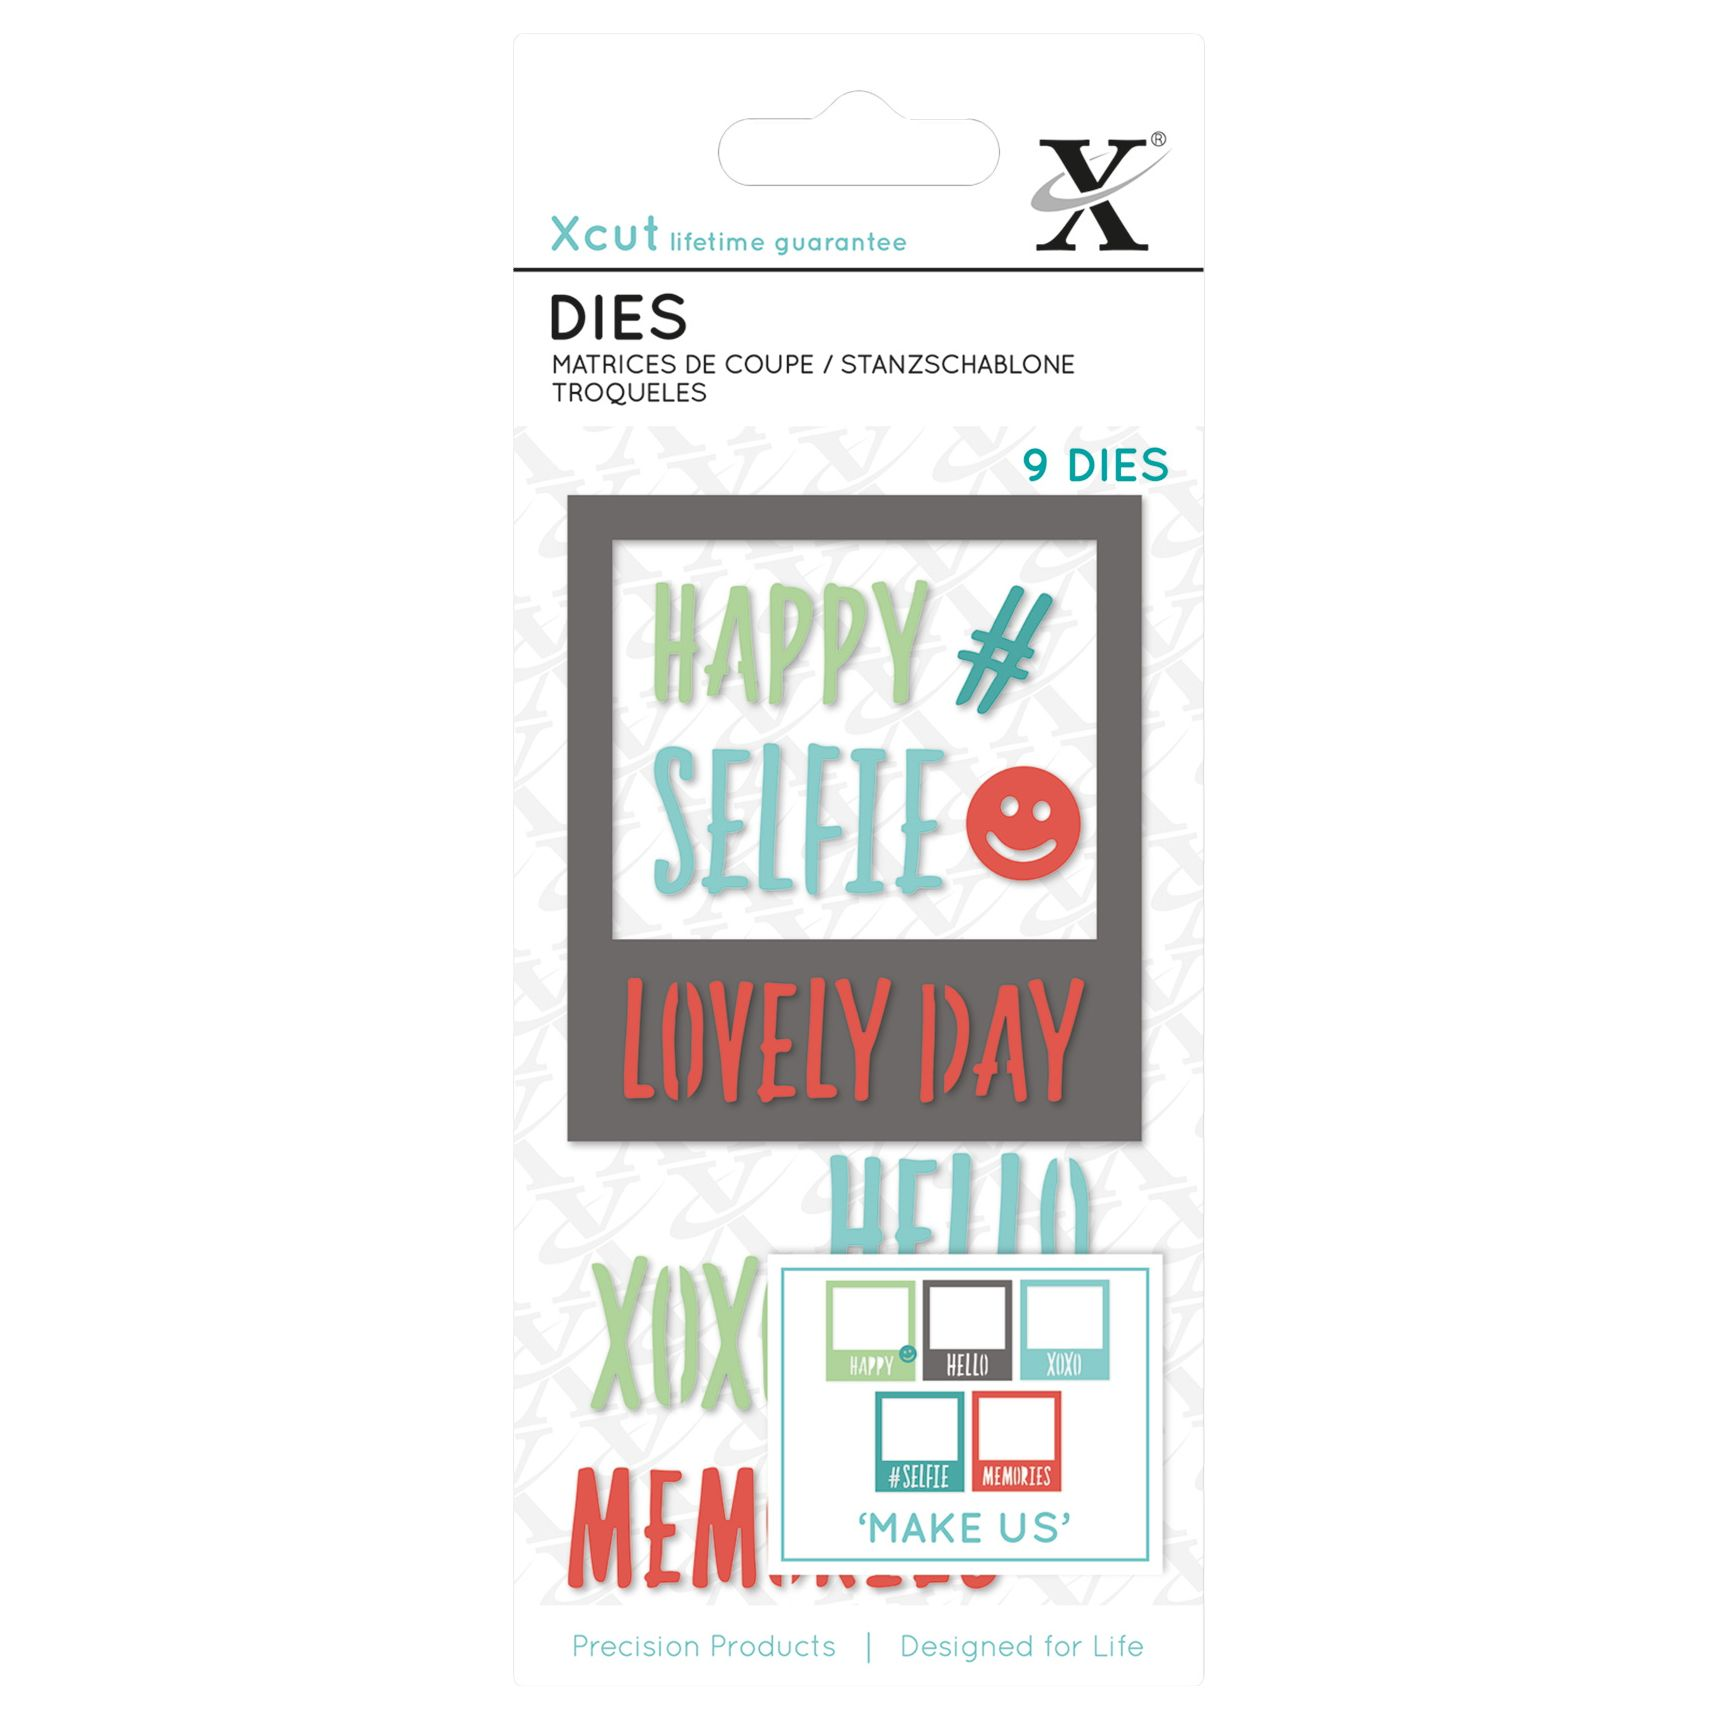 DoCrafts Docrafts Xcut Small Selfie Frame Dies, Pack of 9